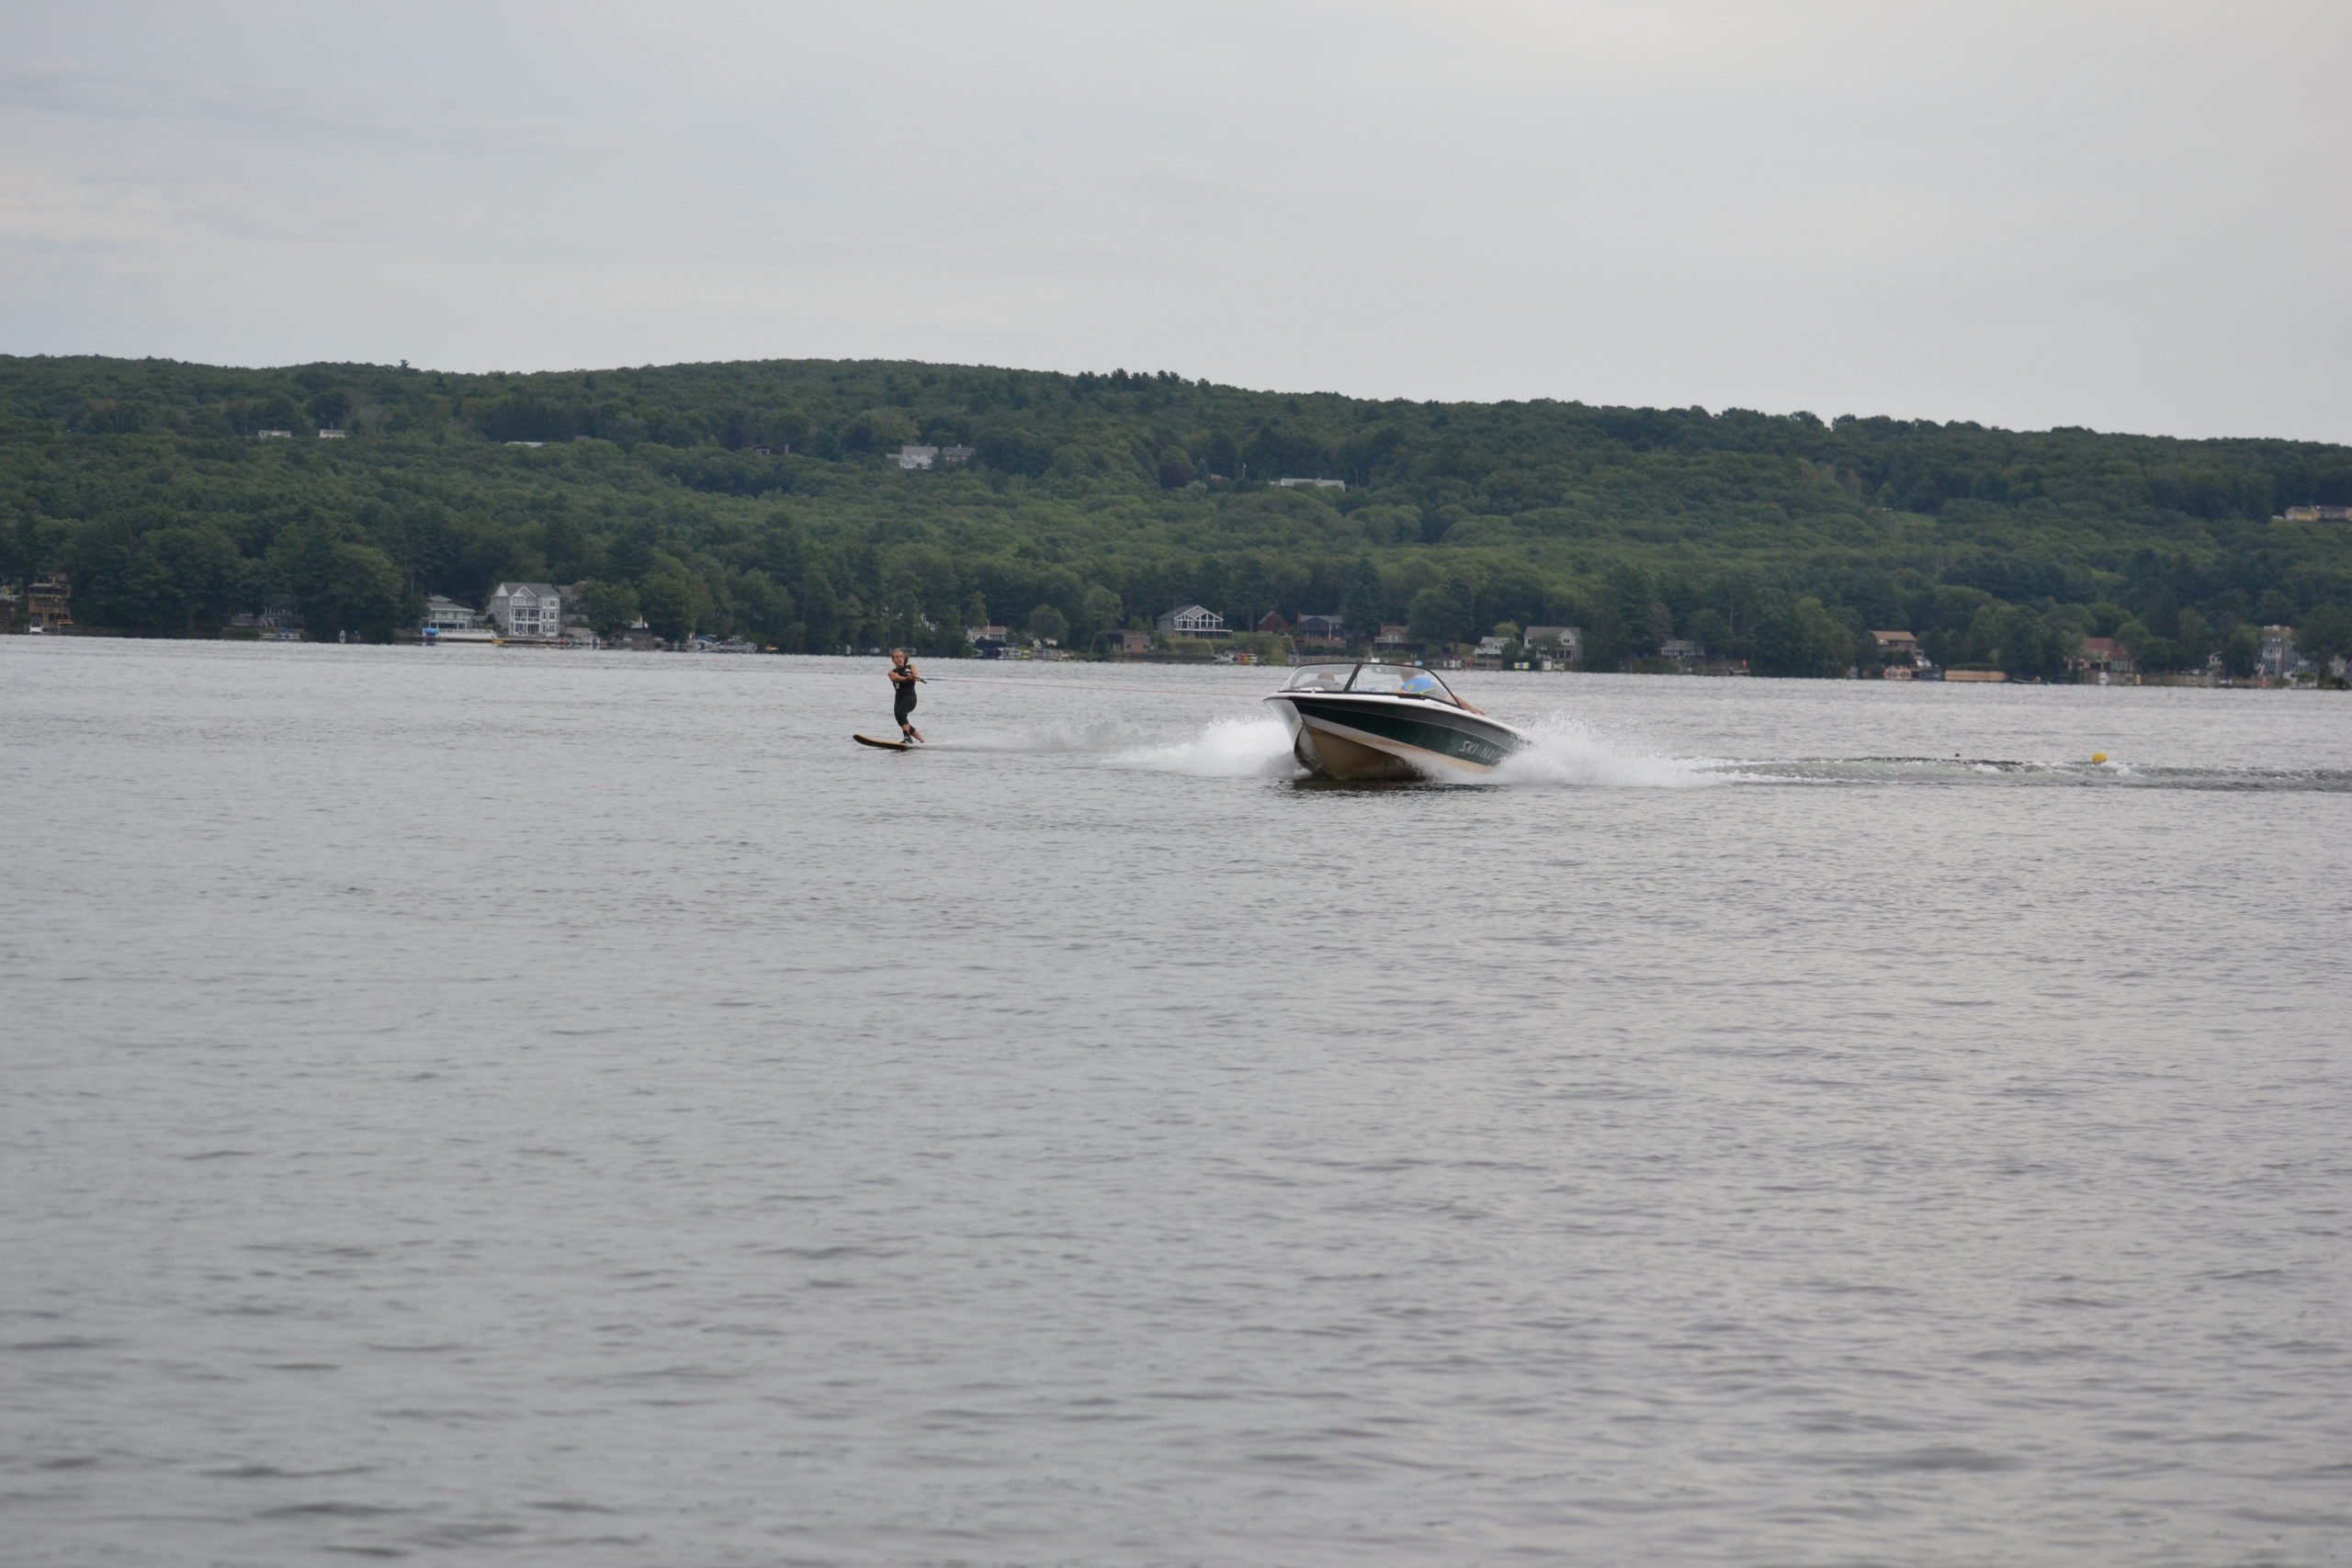 2018 Water Ski Show Nipmuc Ski Club, Webster, MA